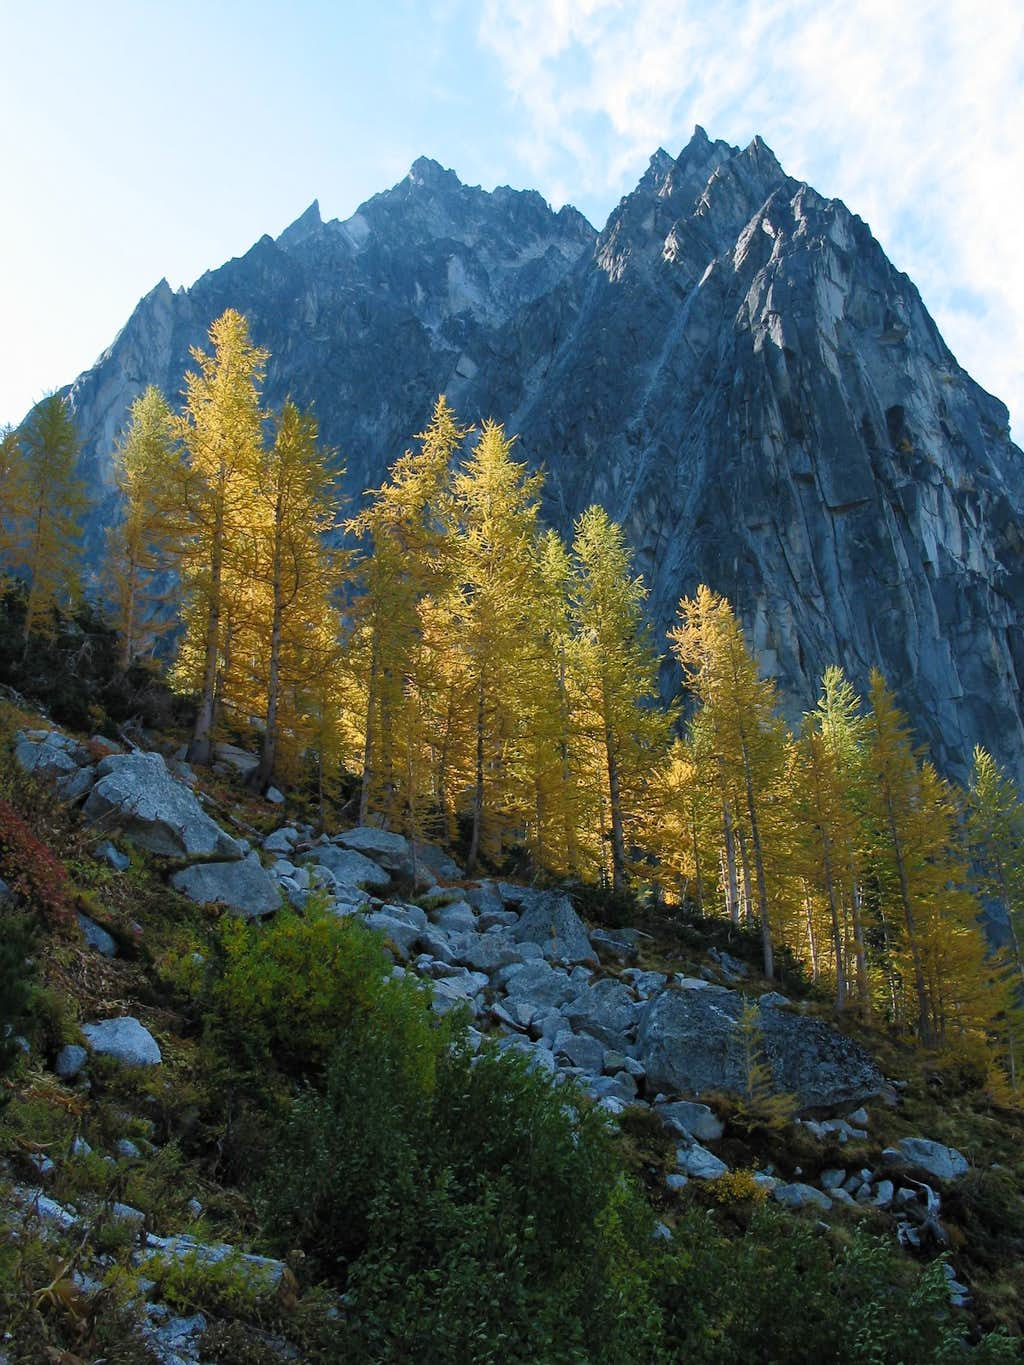 Dragontail and Golden Larches